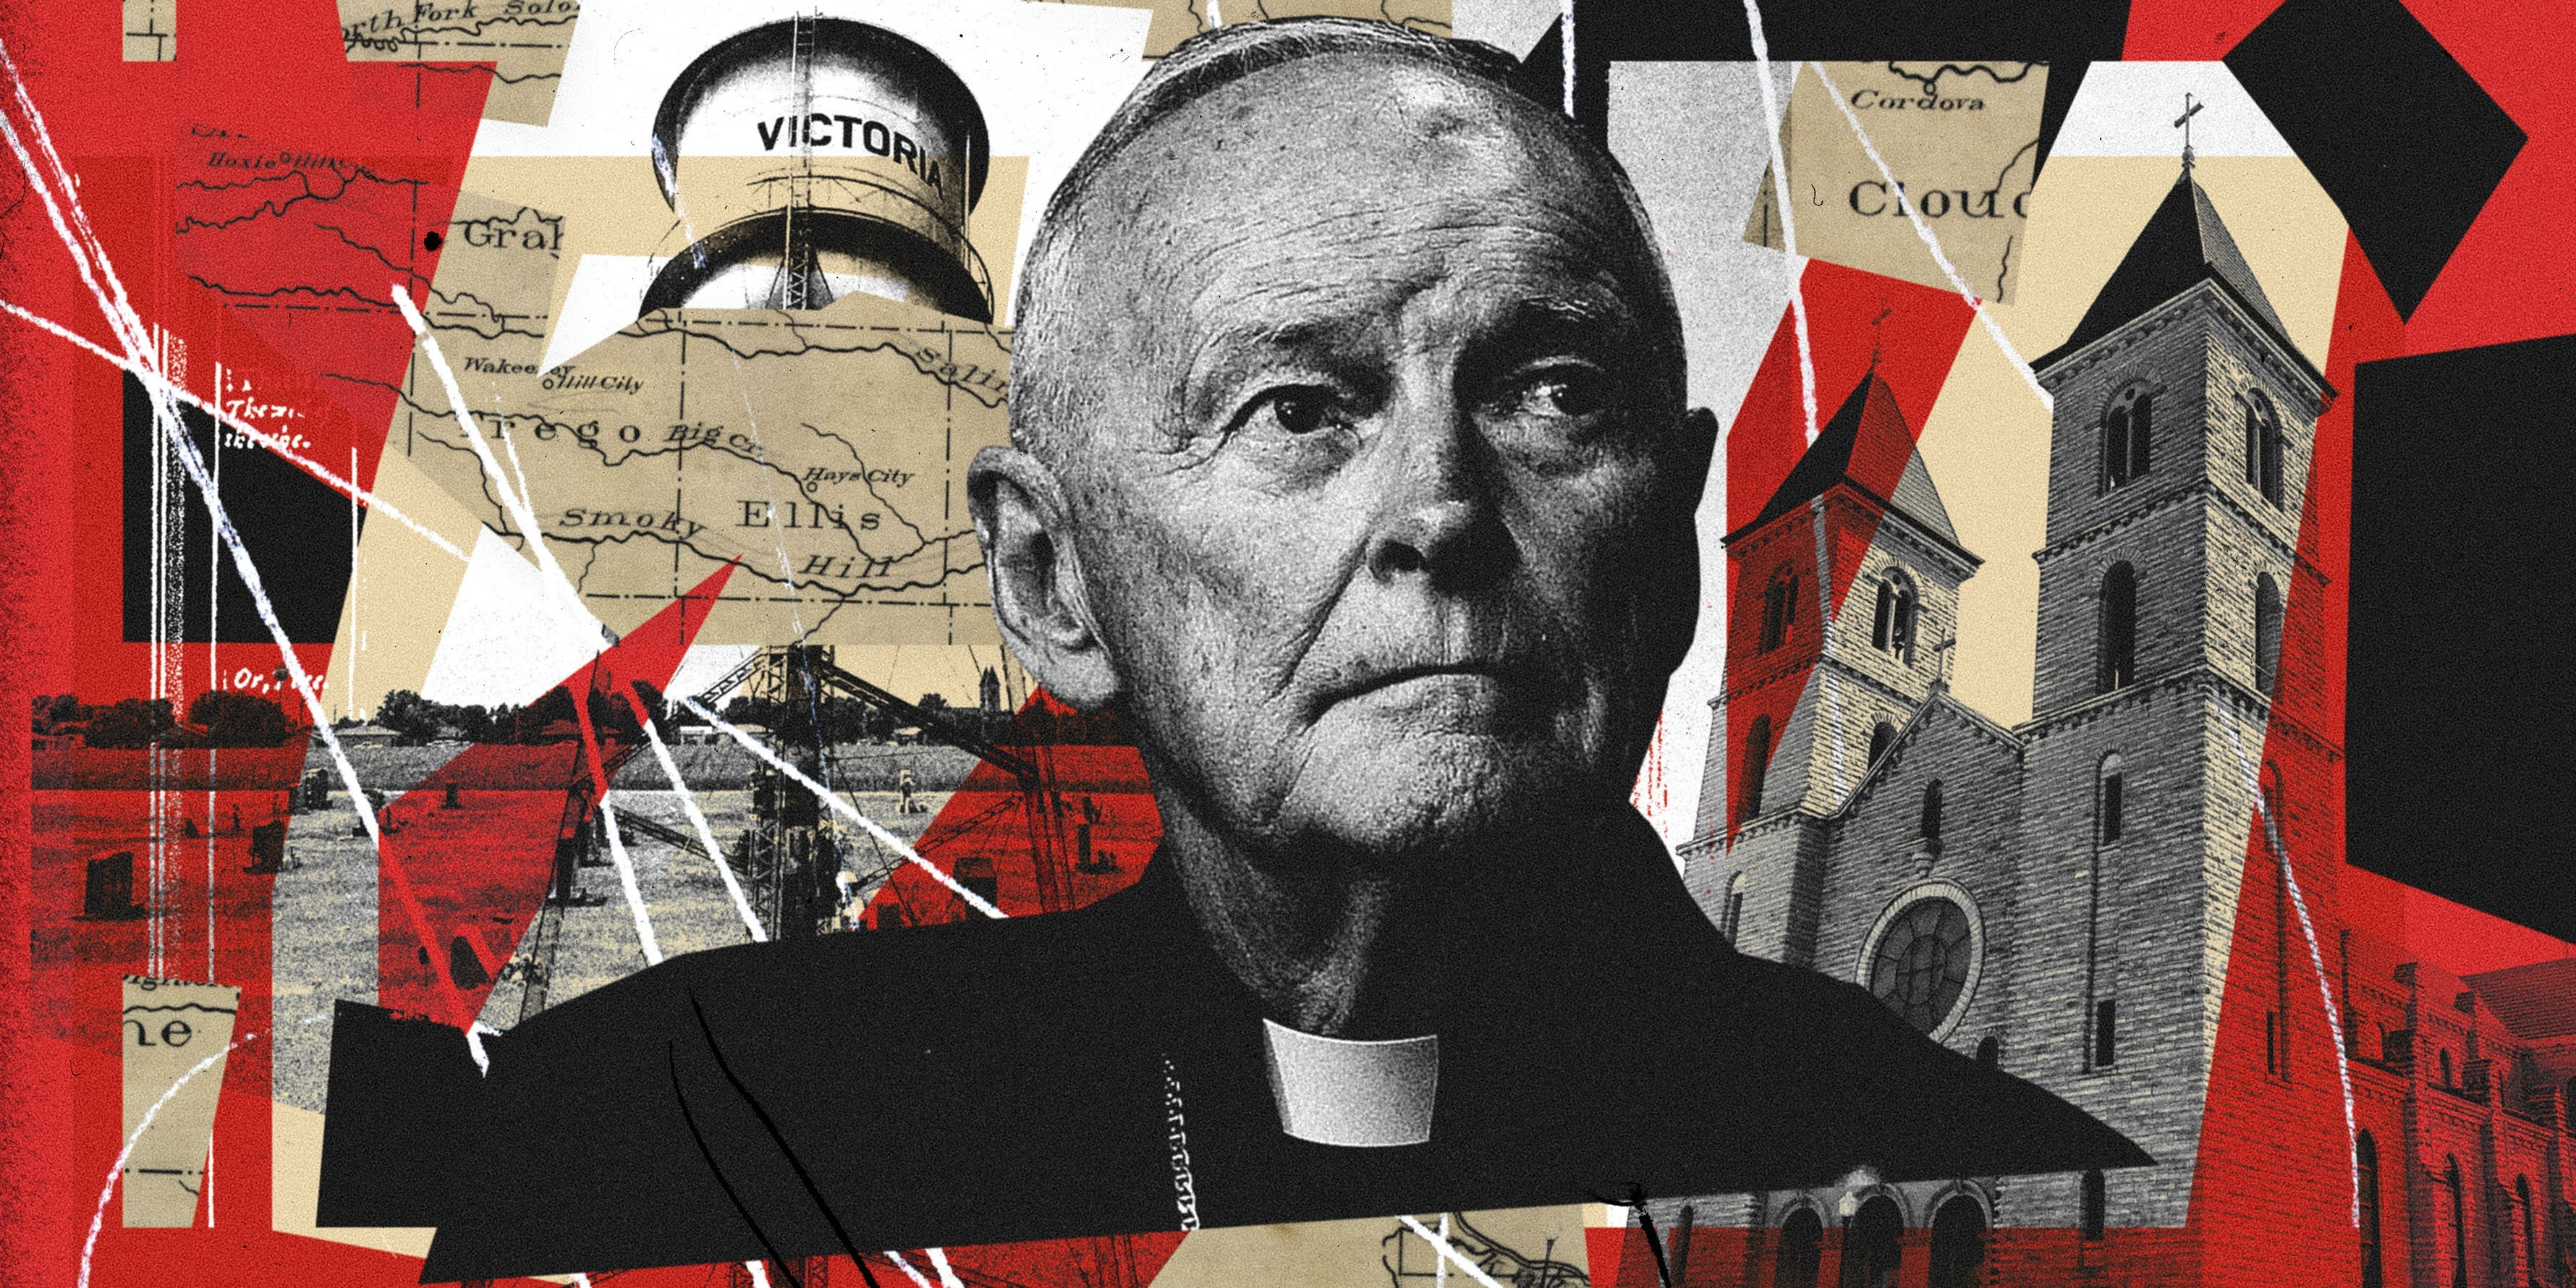 Theodore McCarrick surrounded by chaotic pieces of maps, photos of a cemetery, and the friary where he is located in Victoria Kansas.